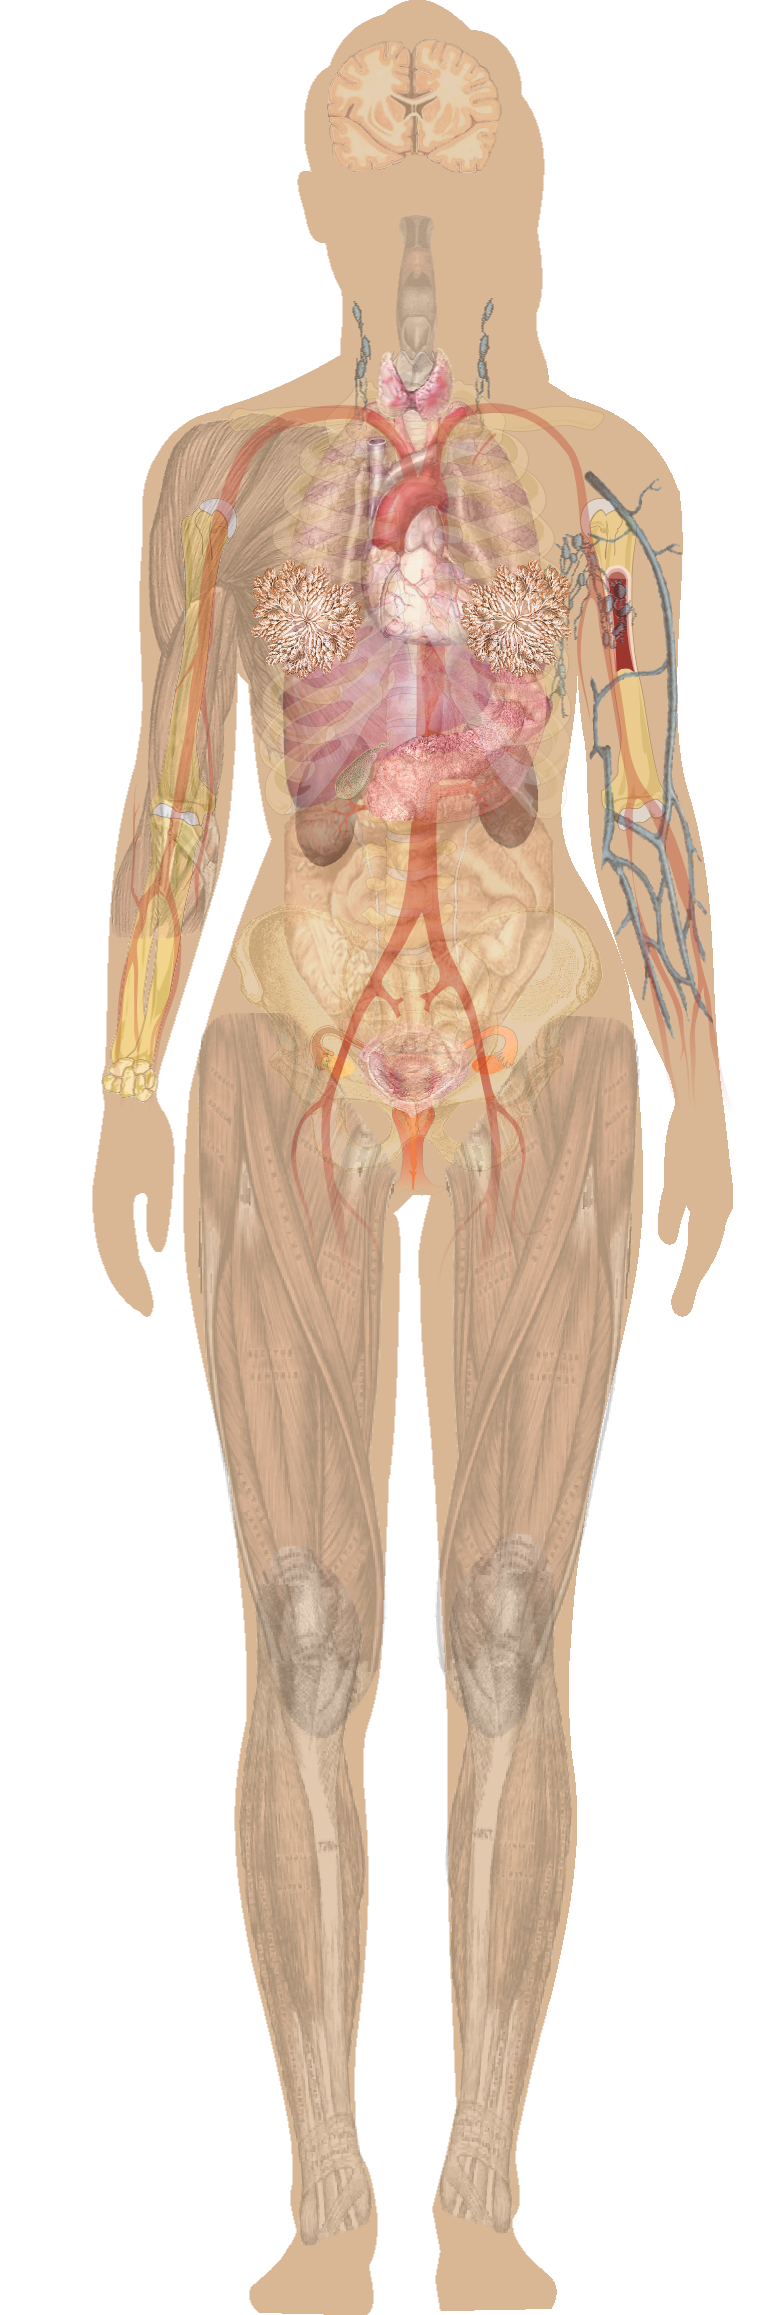 Quotes About Body Organs 71 Quotes